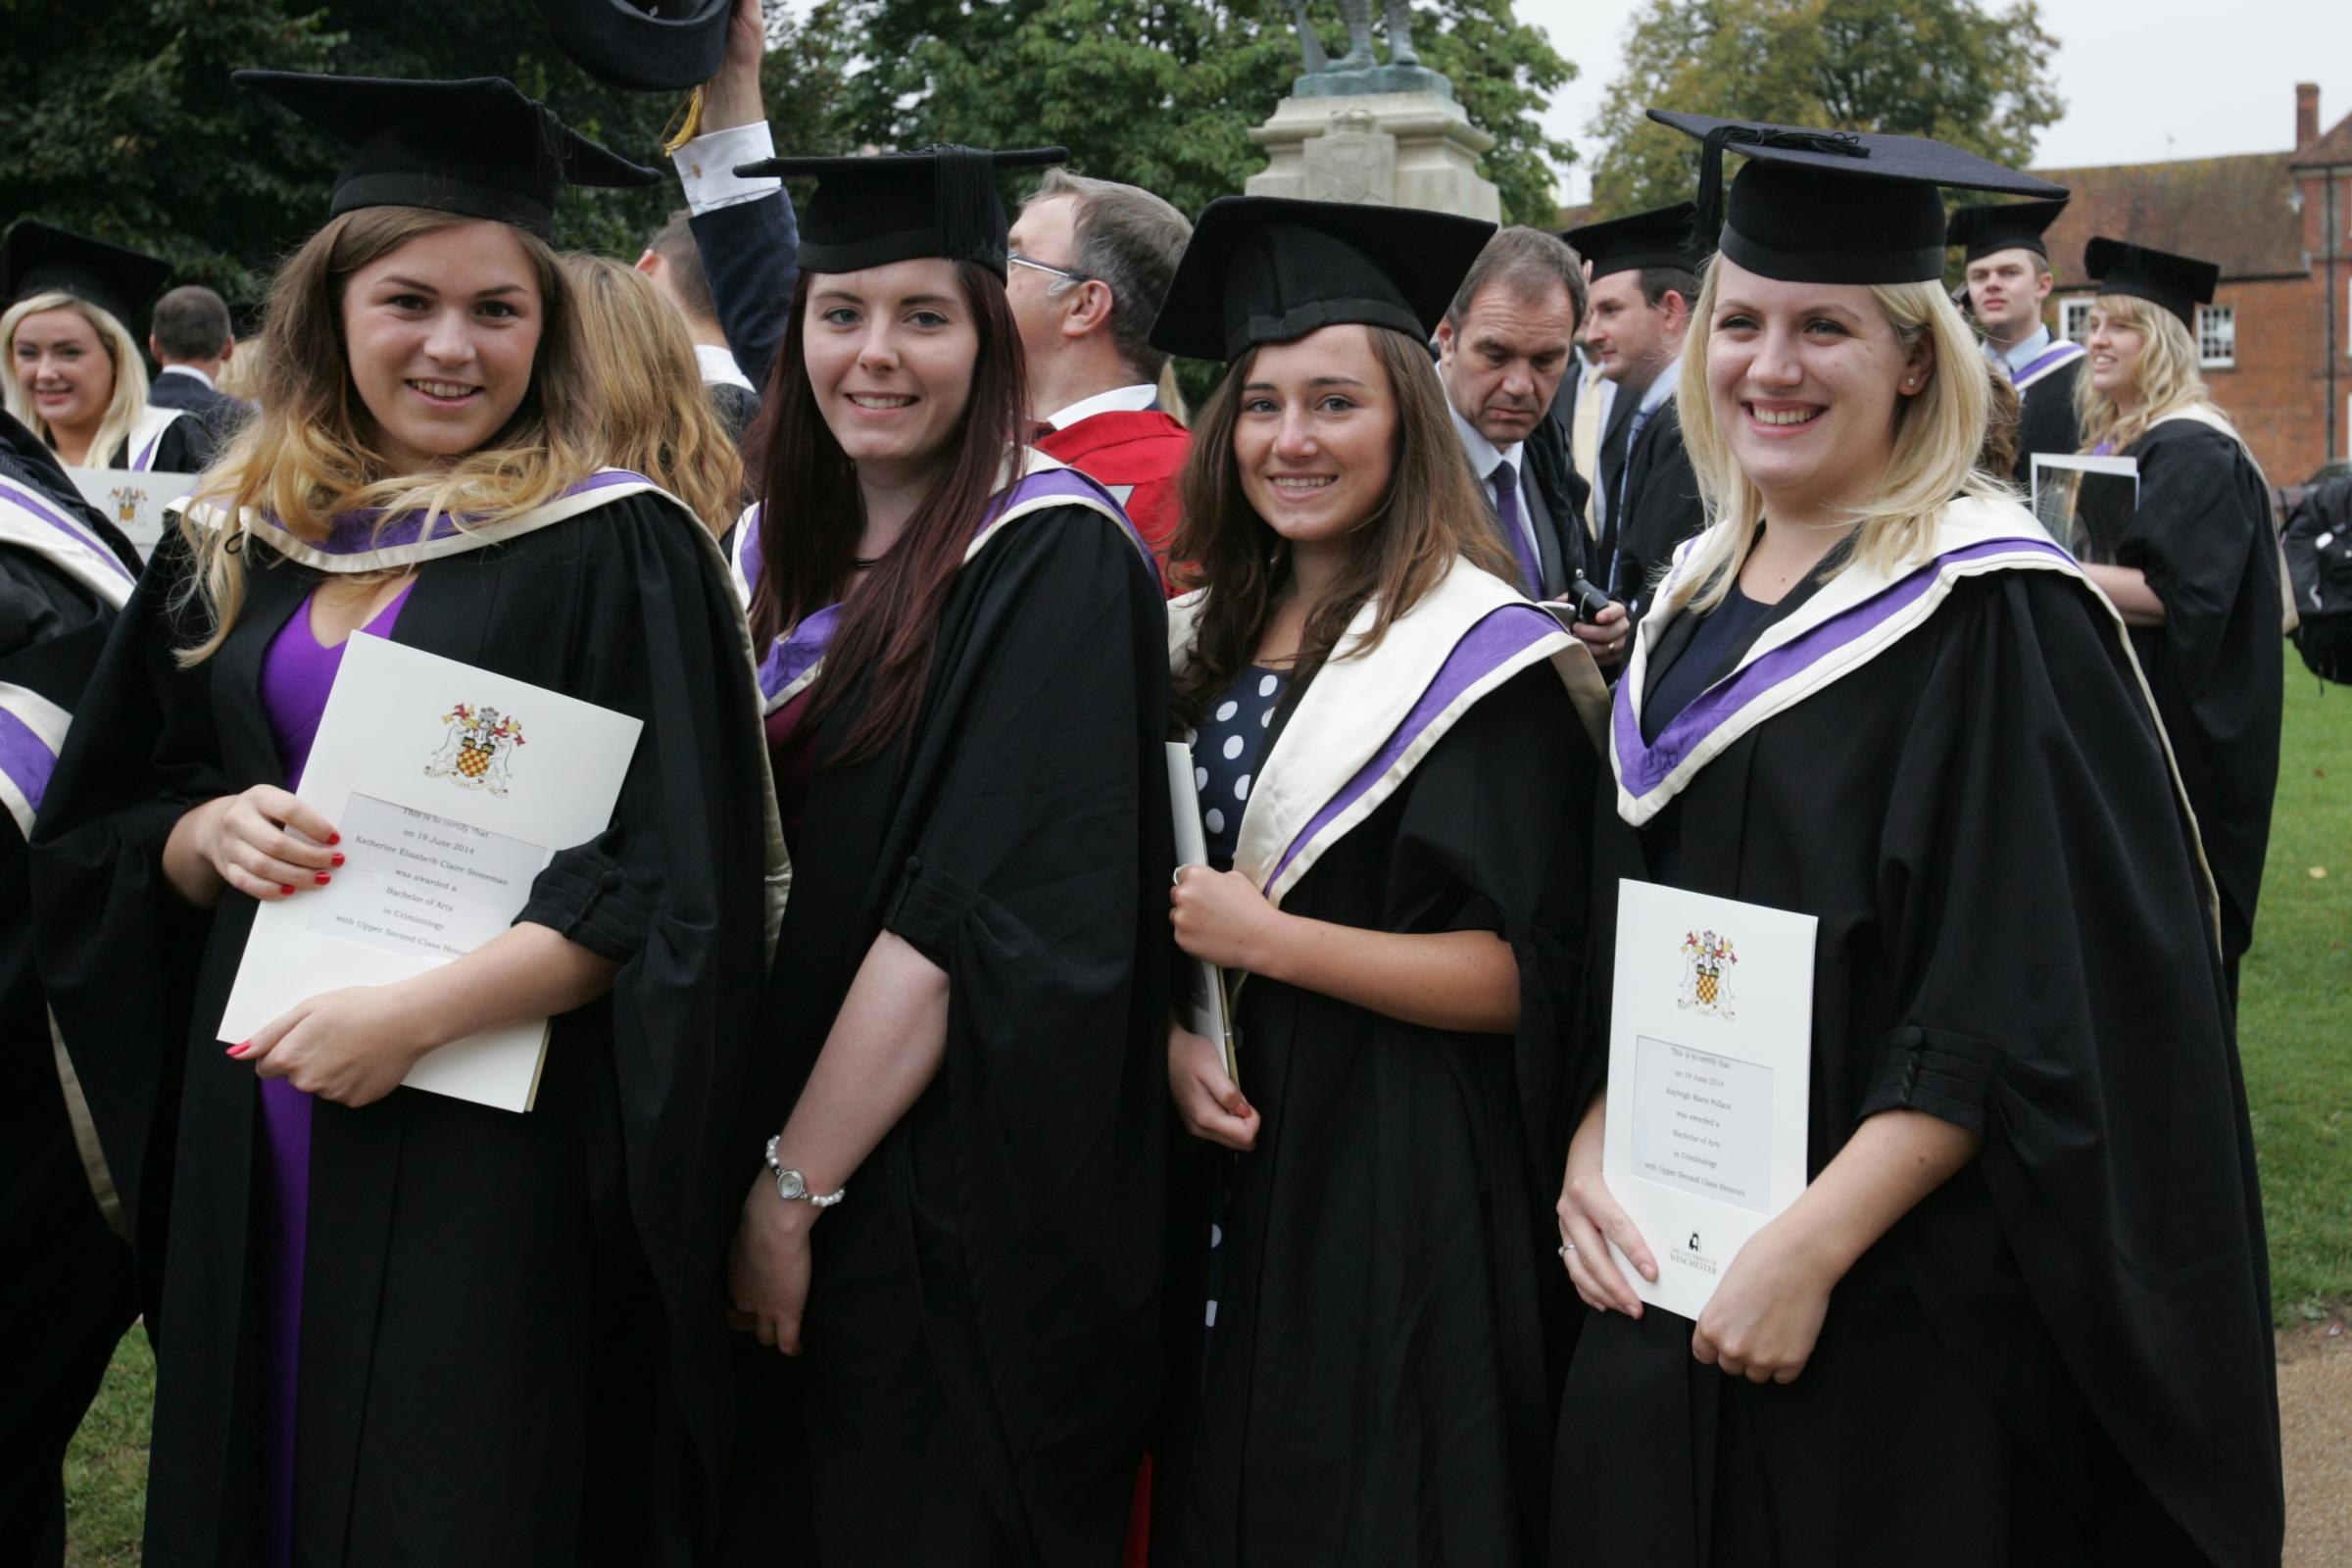 University of Winchester graduation - gallery - from Daily Echo